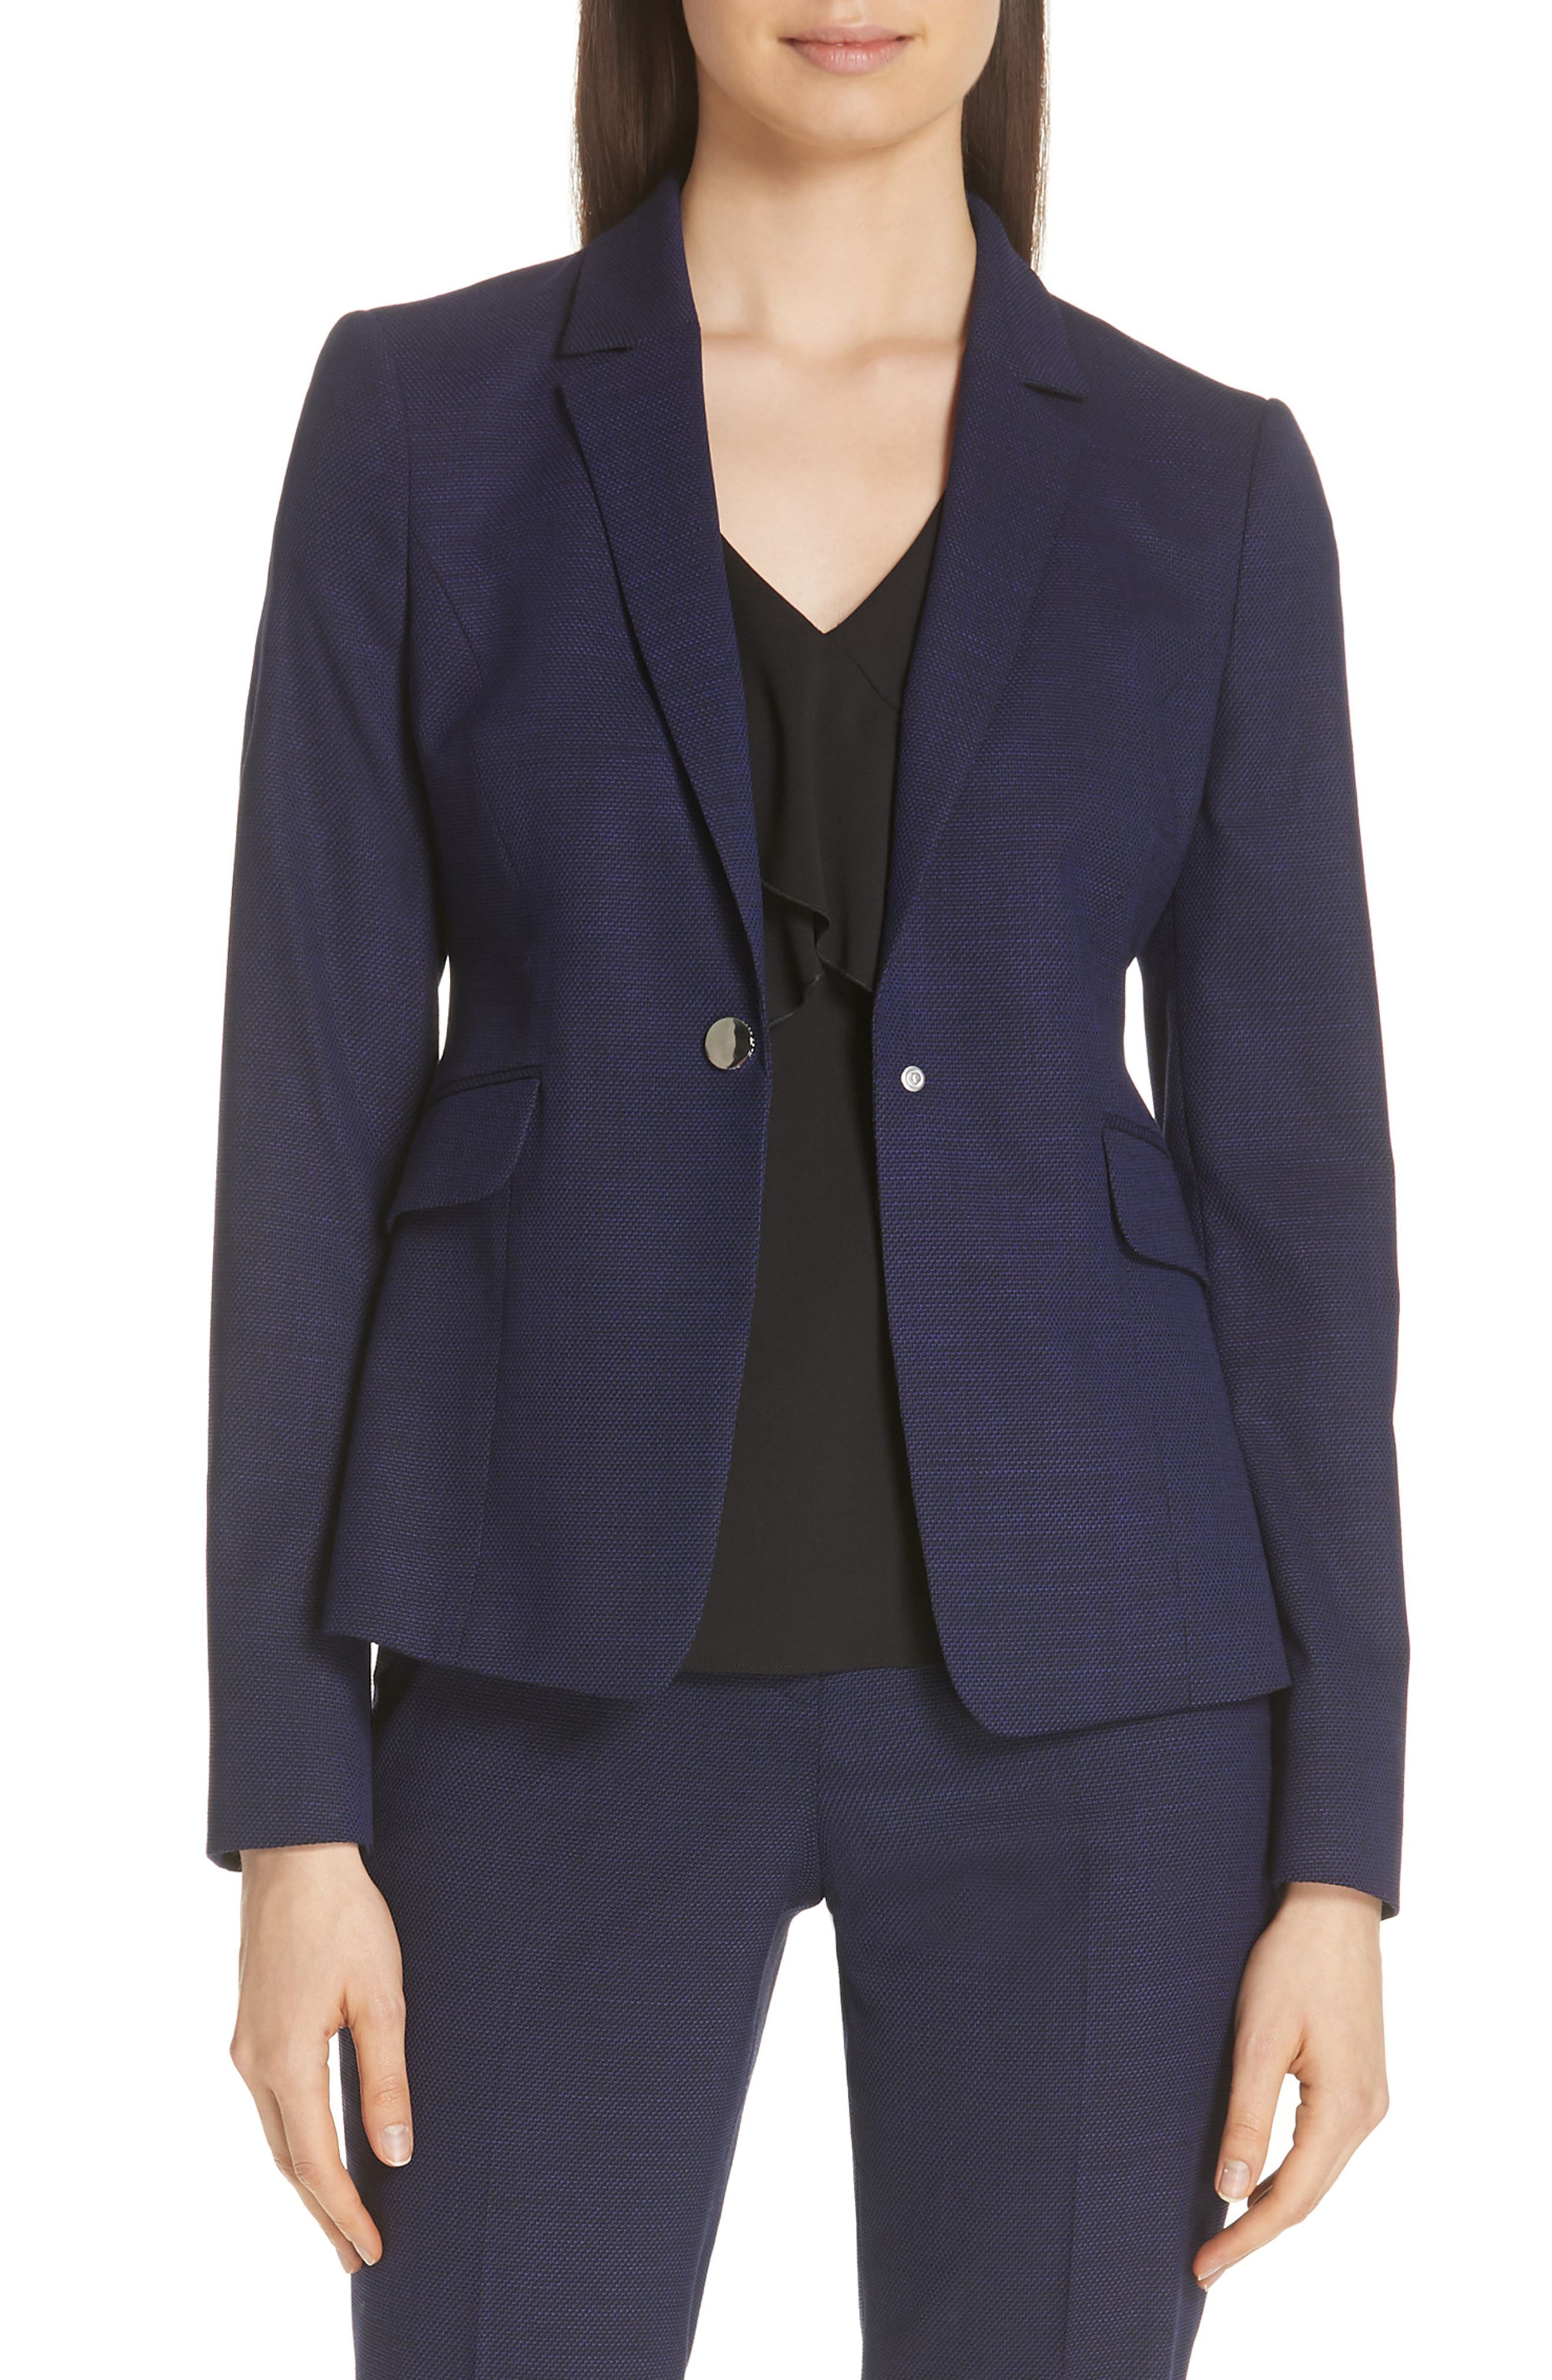 Jibalena Mini Glencheck Suit Jacket,                         Main,                         color, Deep Lilac Fantasy